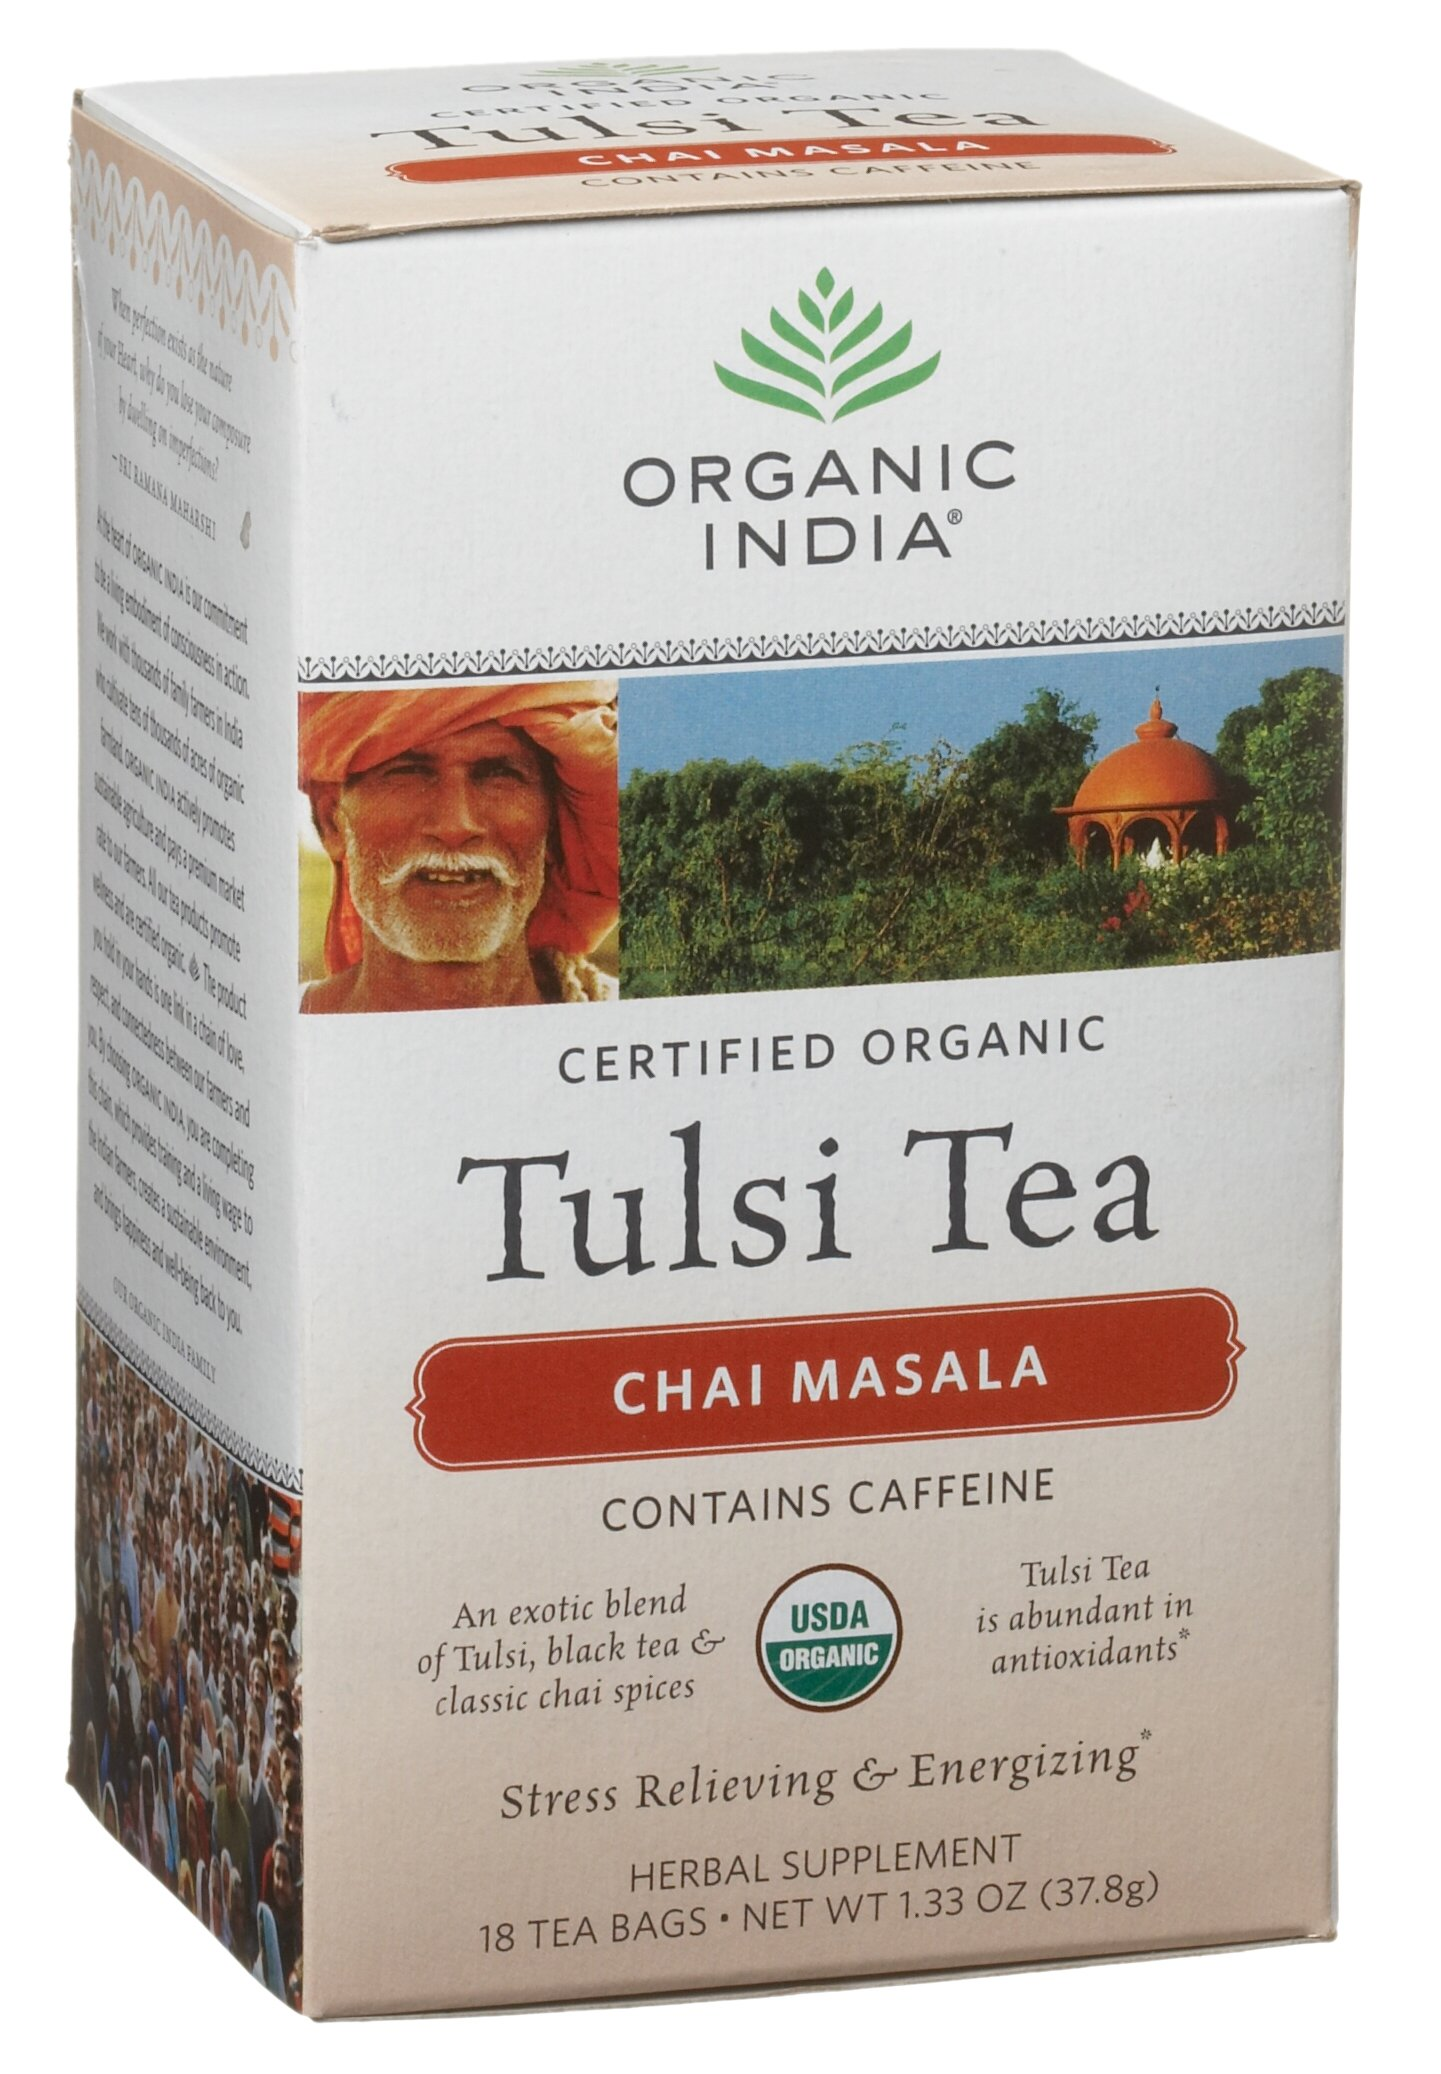 Organic India Tulsi Chai Masala, 19-Ounce Boxes (Pack of 6)